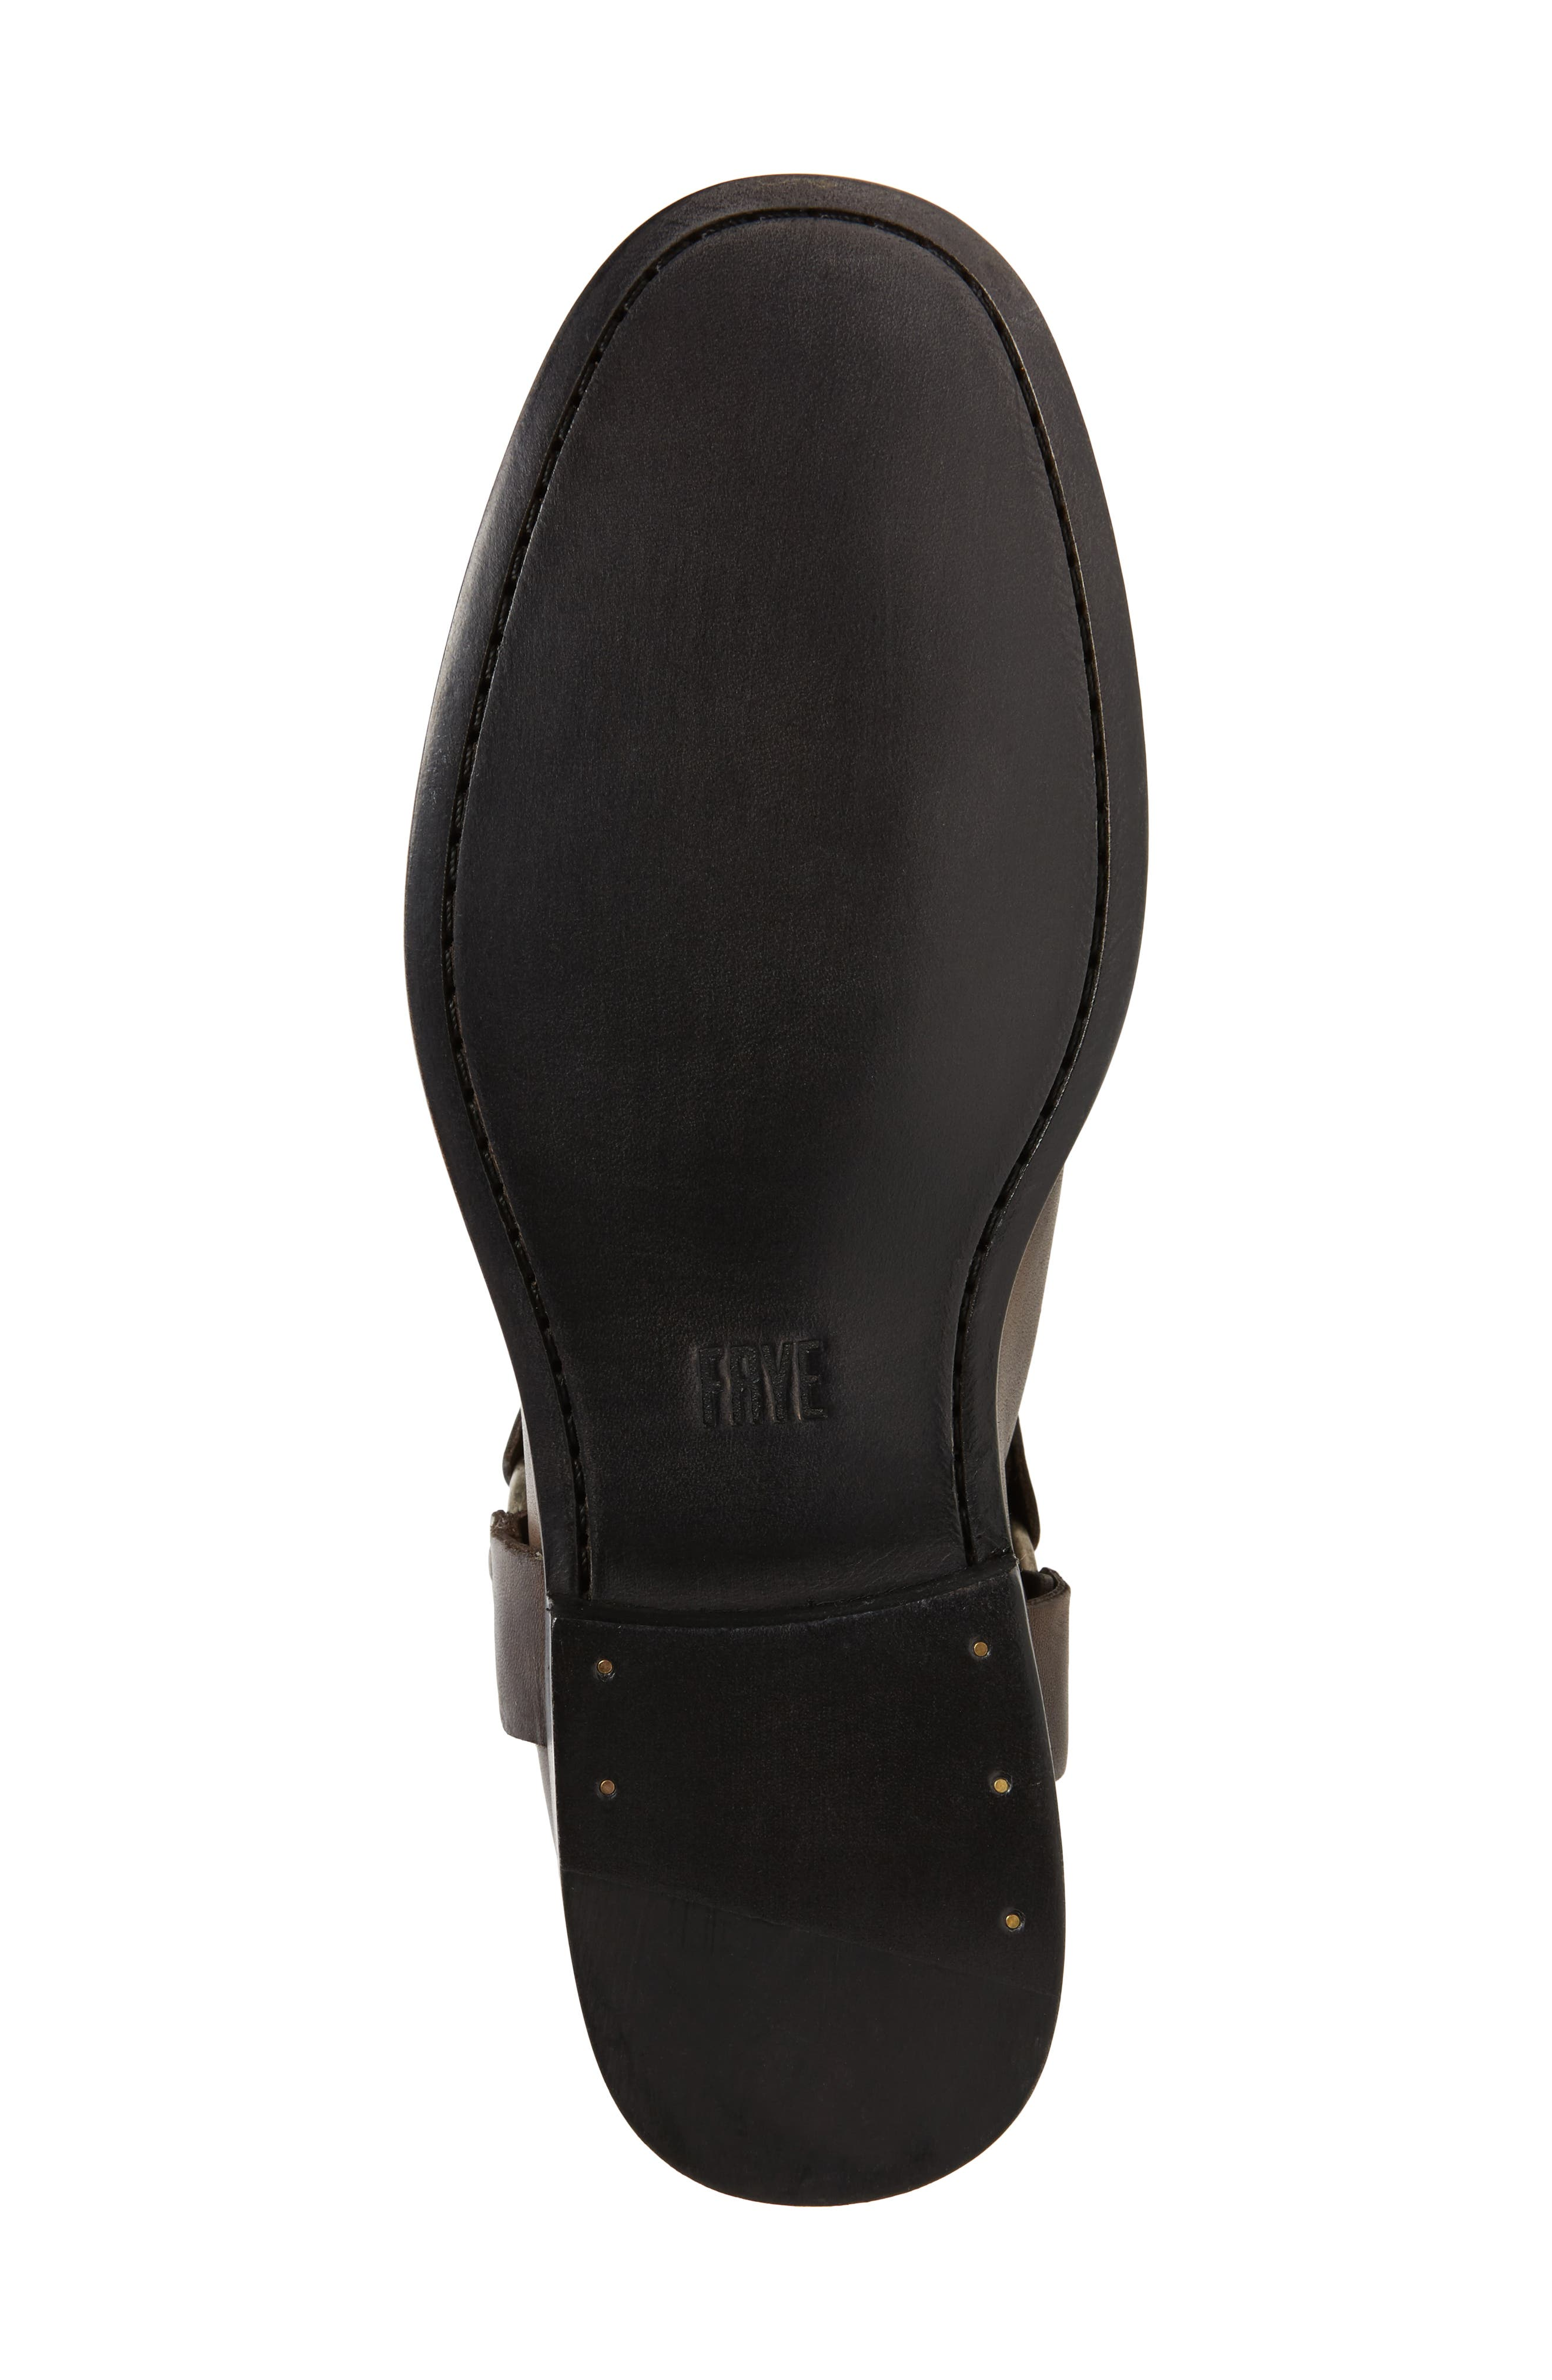 Phillip Harness Tall Boot,                             Alternate thumbnail 6, color,                             Smoke Leather